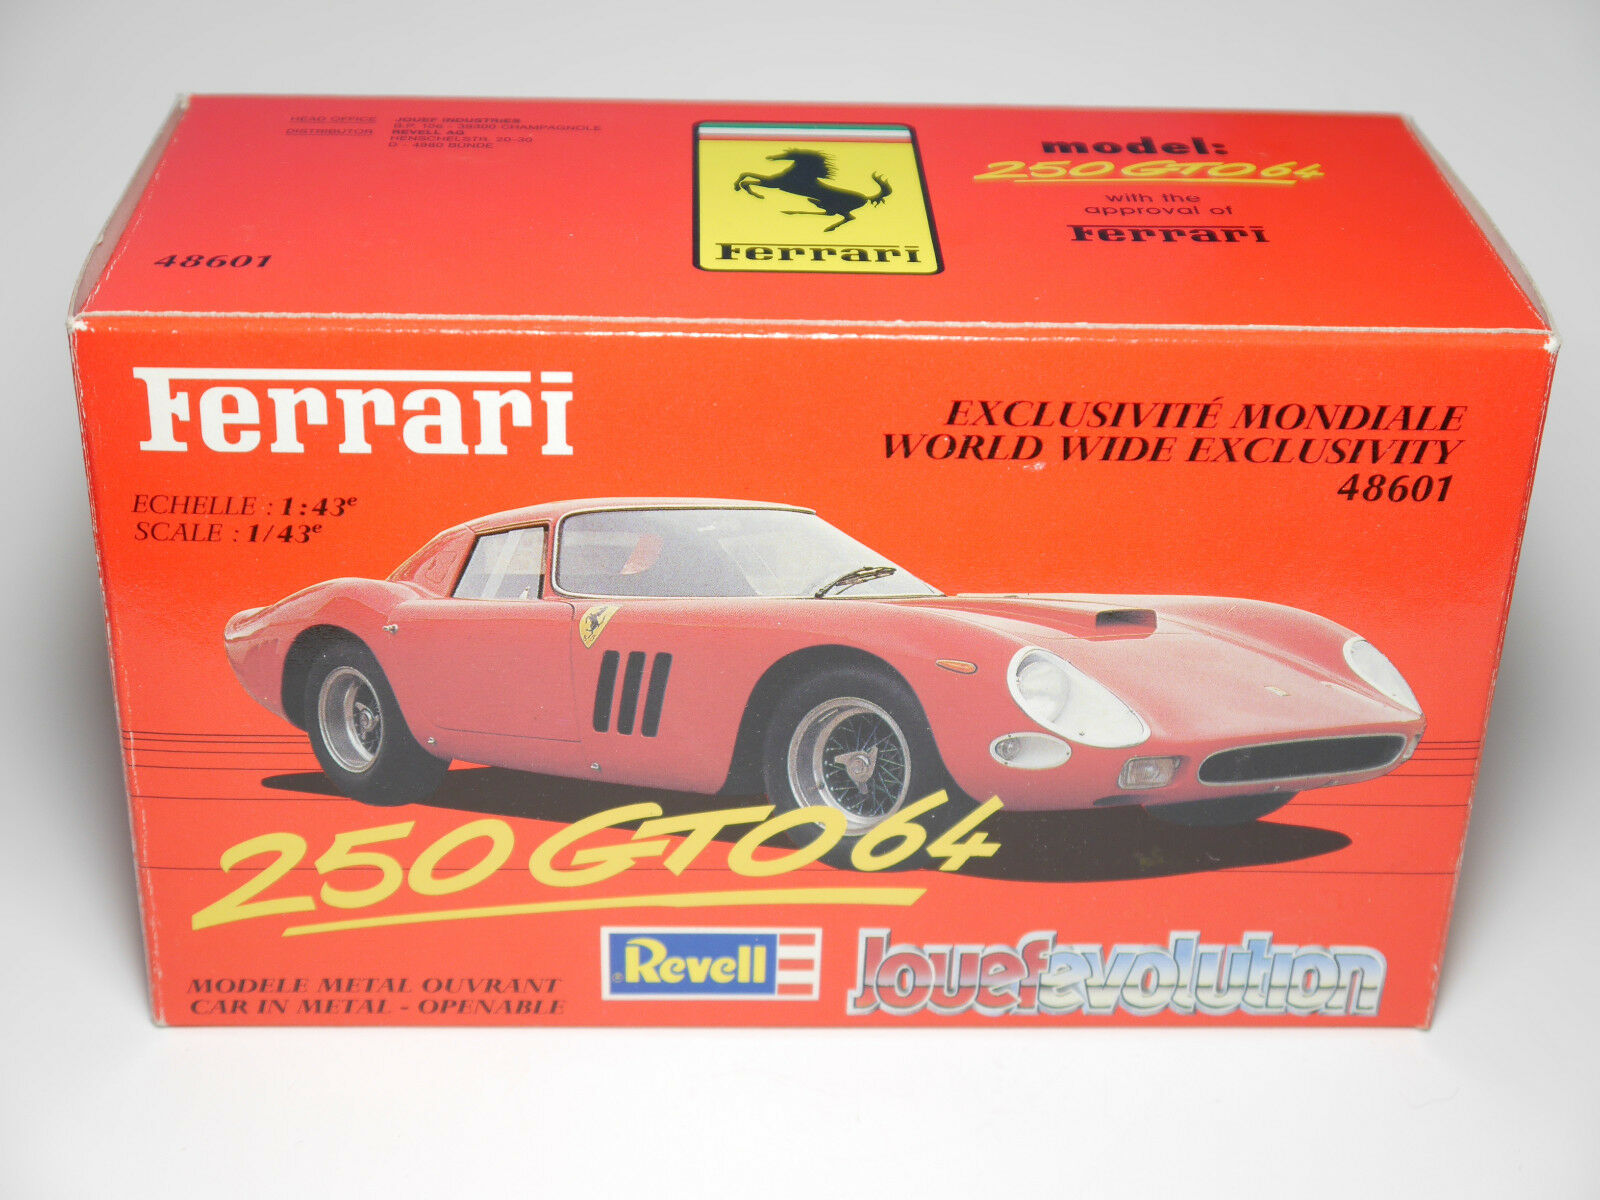 Ferrari 250 GTO 64 Red red red Red, Revell Jouef Evolution 1 43 Boxed